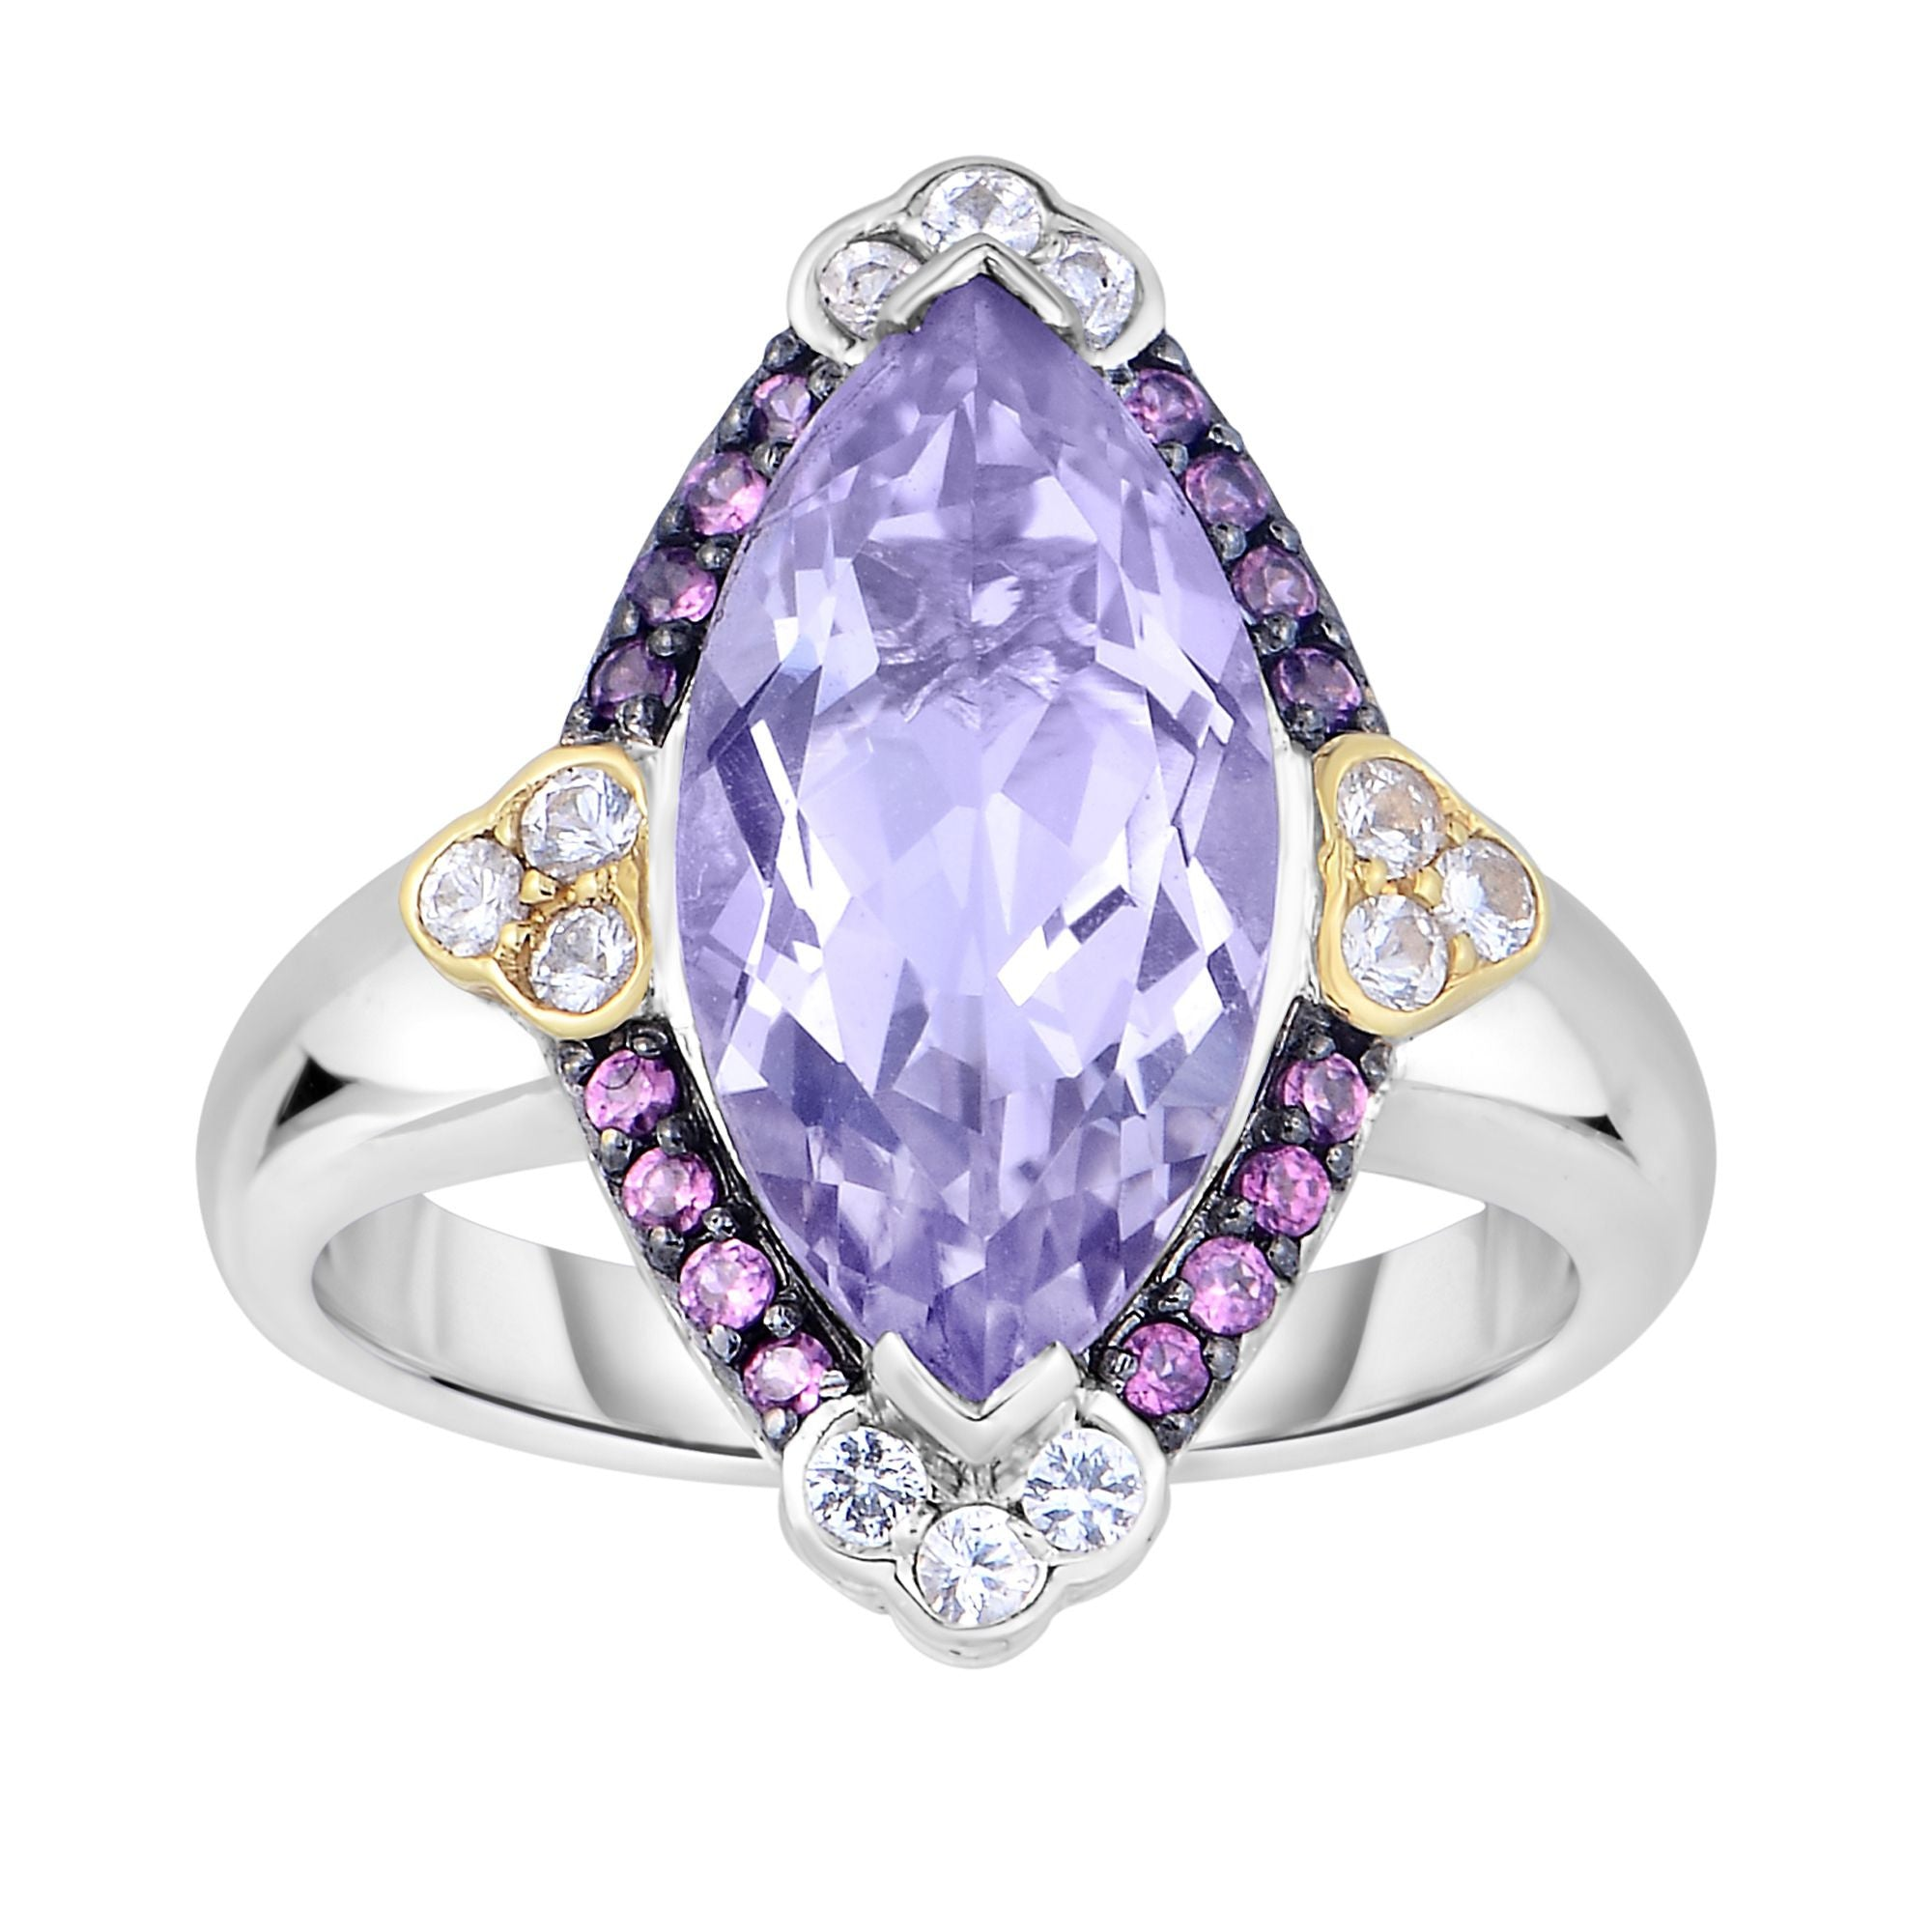 copy sapphire ring jewelry j pink sale rings diamond id stone pea sweet for engagement master marquise at gold and carat c